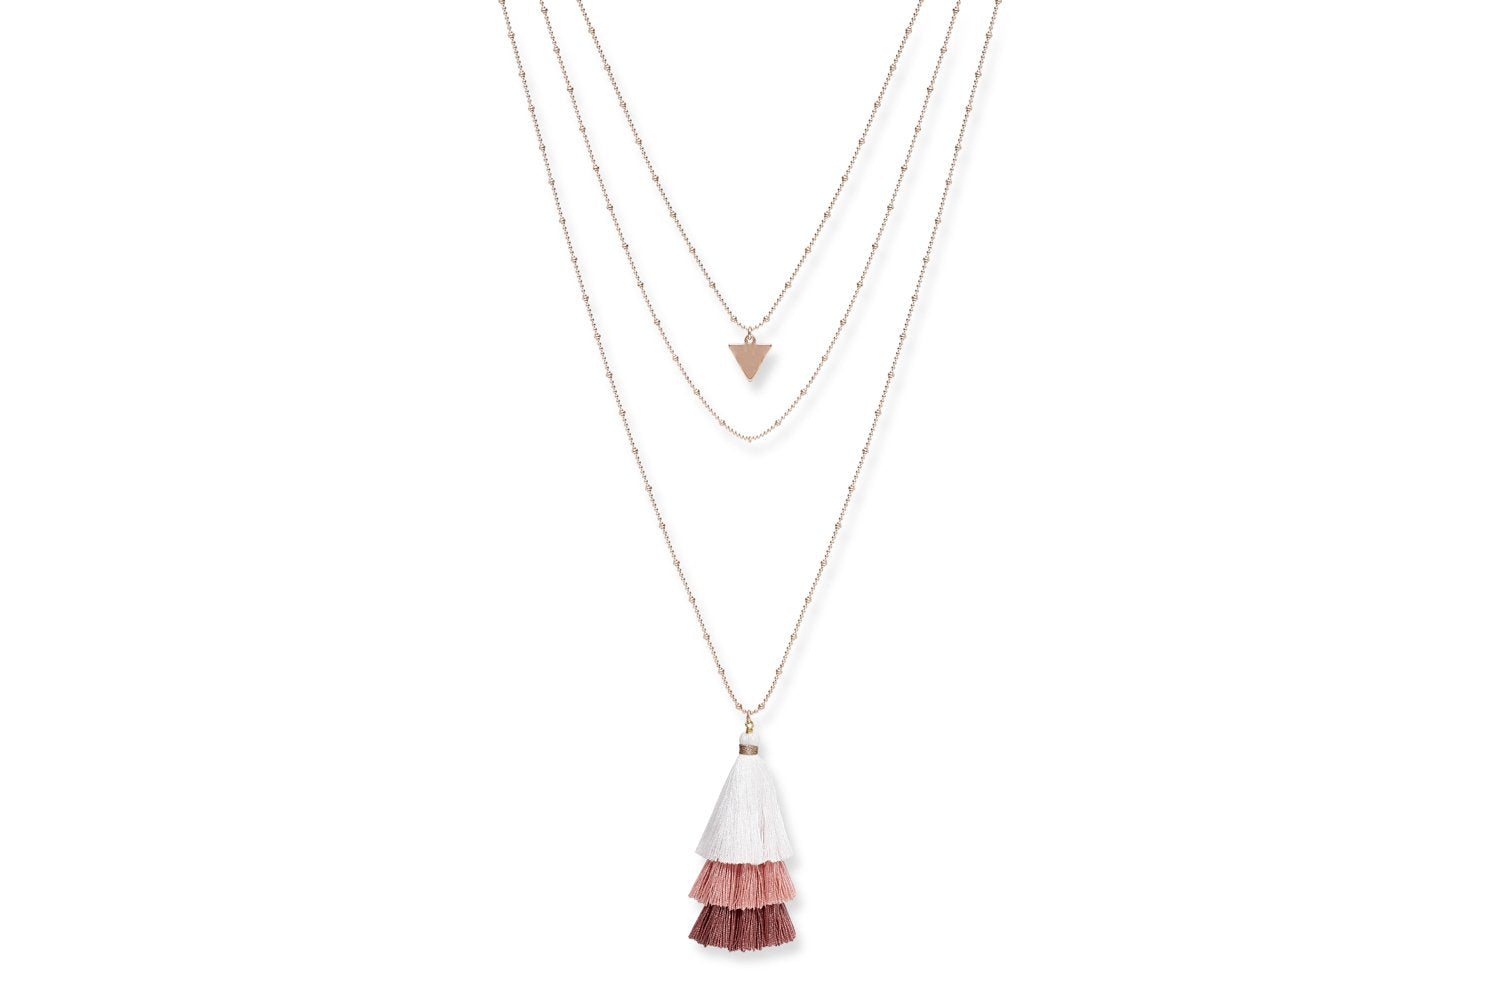 three strand rose gold necklace with pink and white tassels and triangle charm